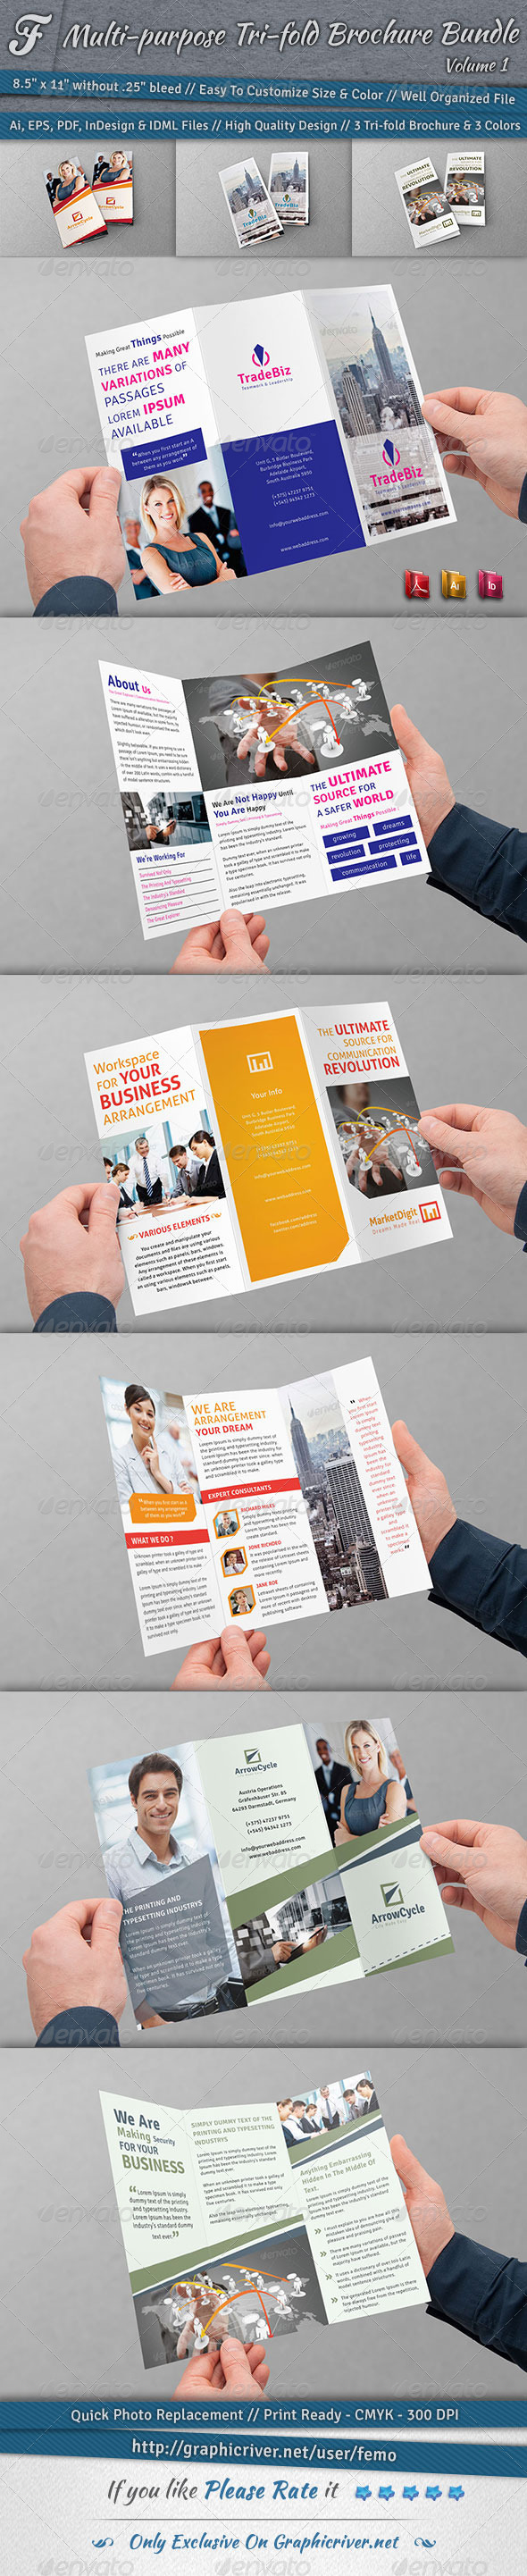 Multi-purpose Tri-fold Brochure Bundle | Volume 1 - Corporate Brochures